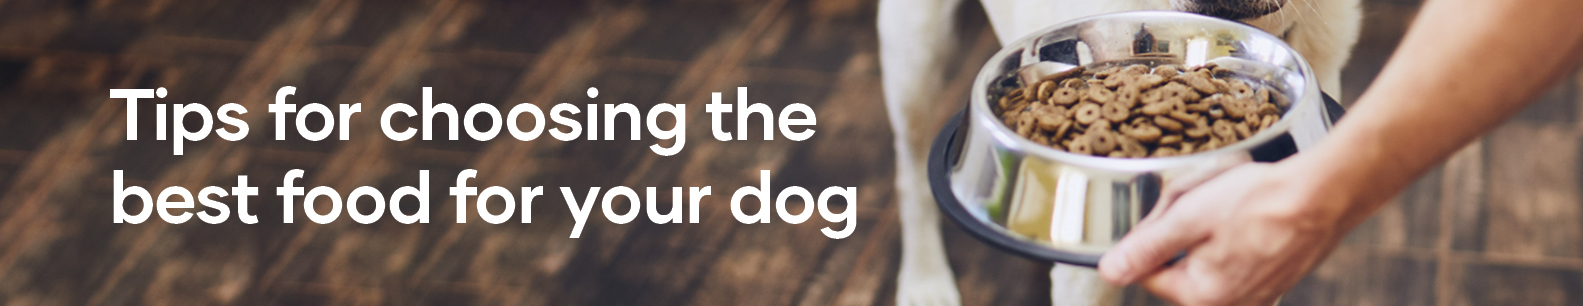 Tips for choosing the best food for your dog